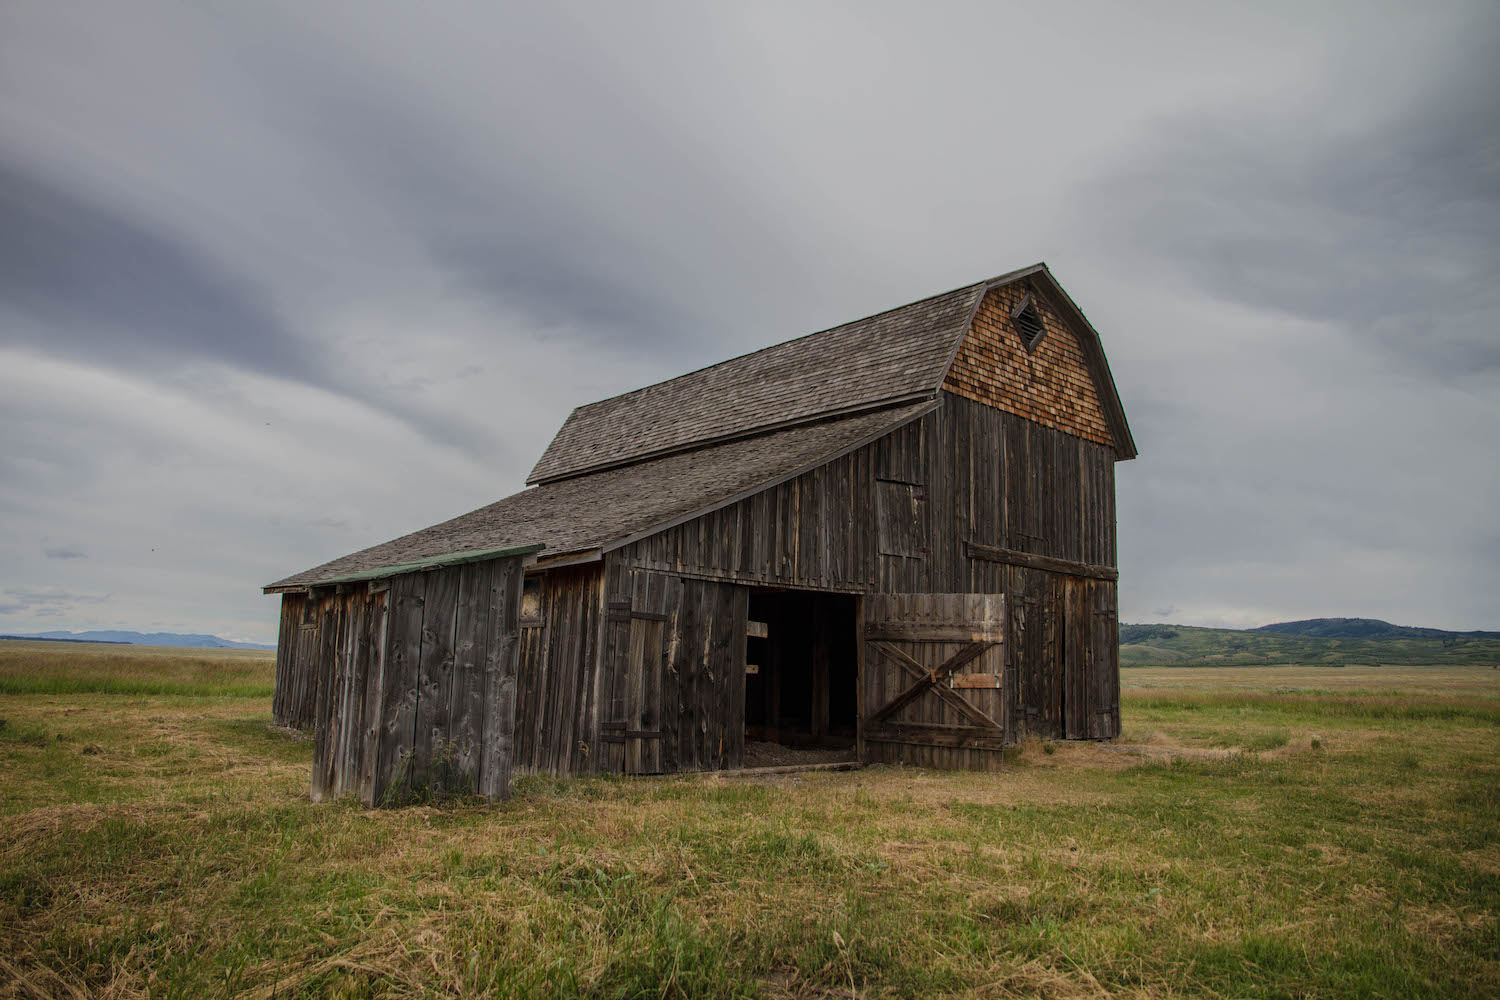 The barns are majestic.